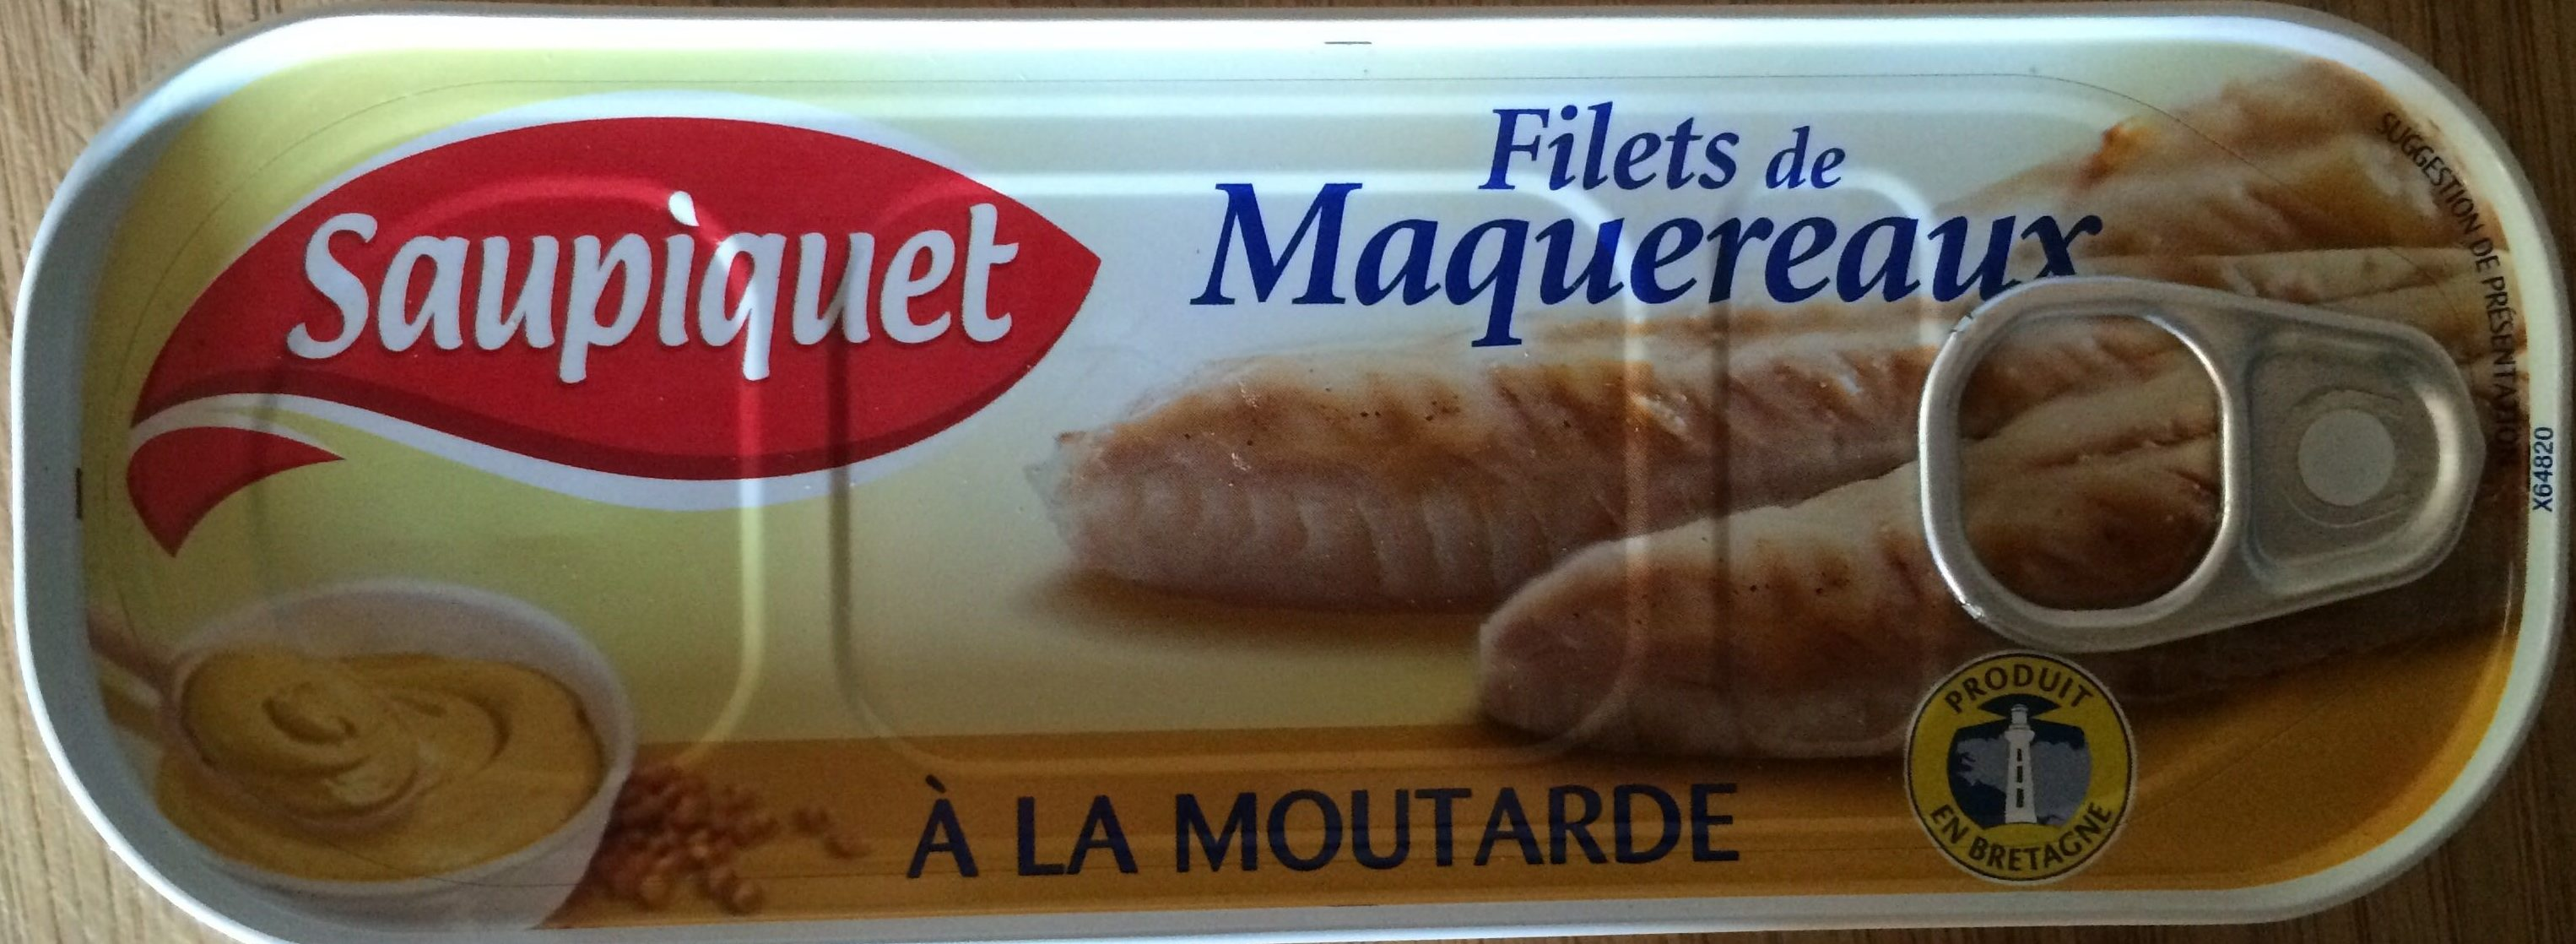 Filet de Maquereaux (À la Moutarde) - Product